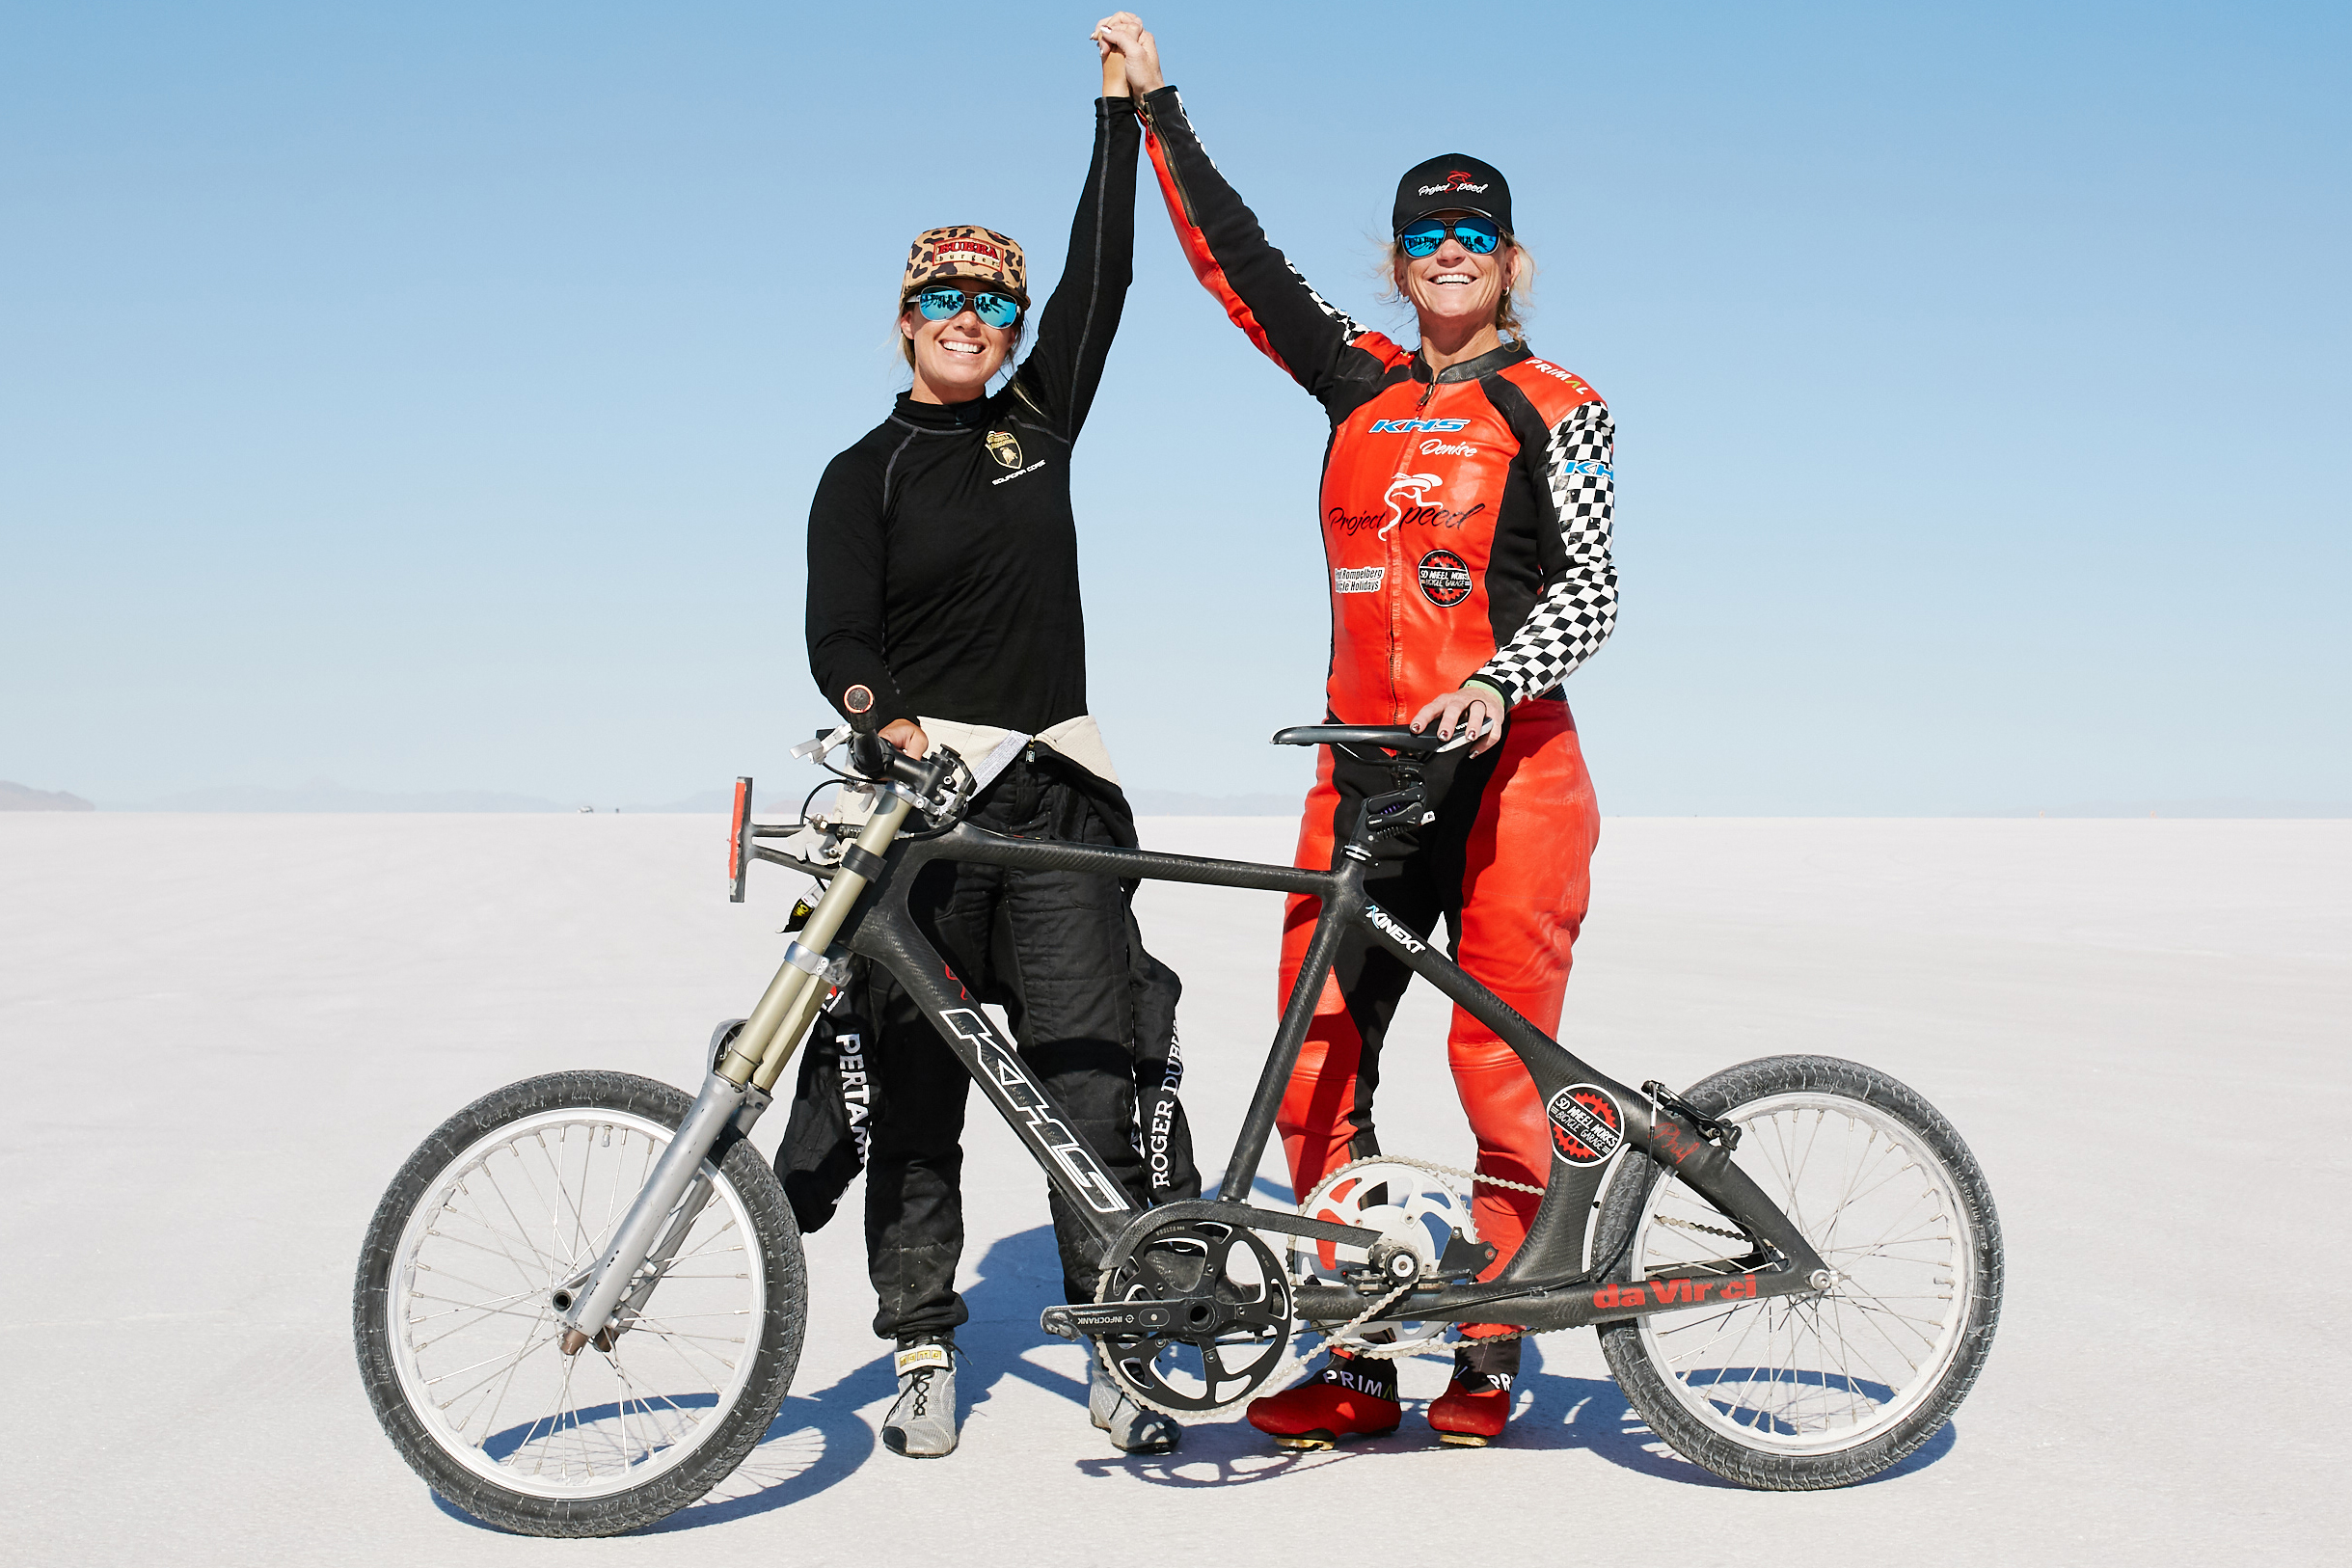 184 MPH on a Bicycle! Woman Sets New Speed Record